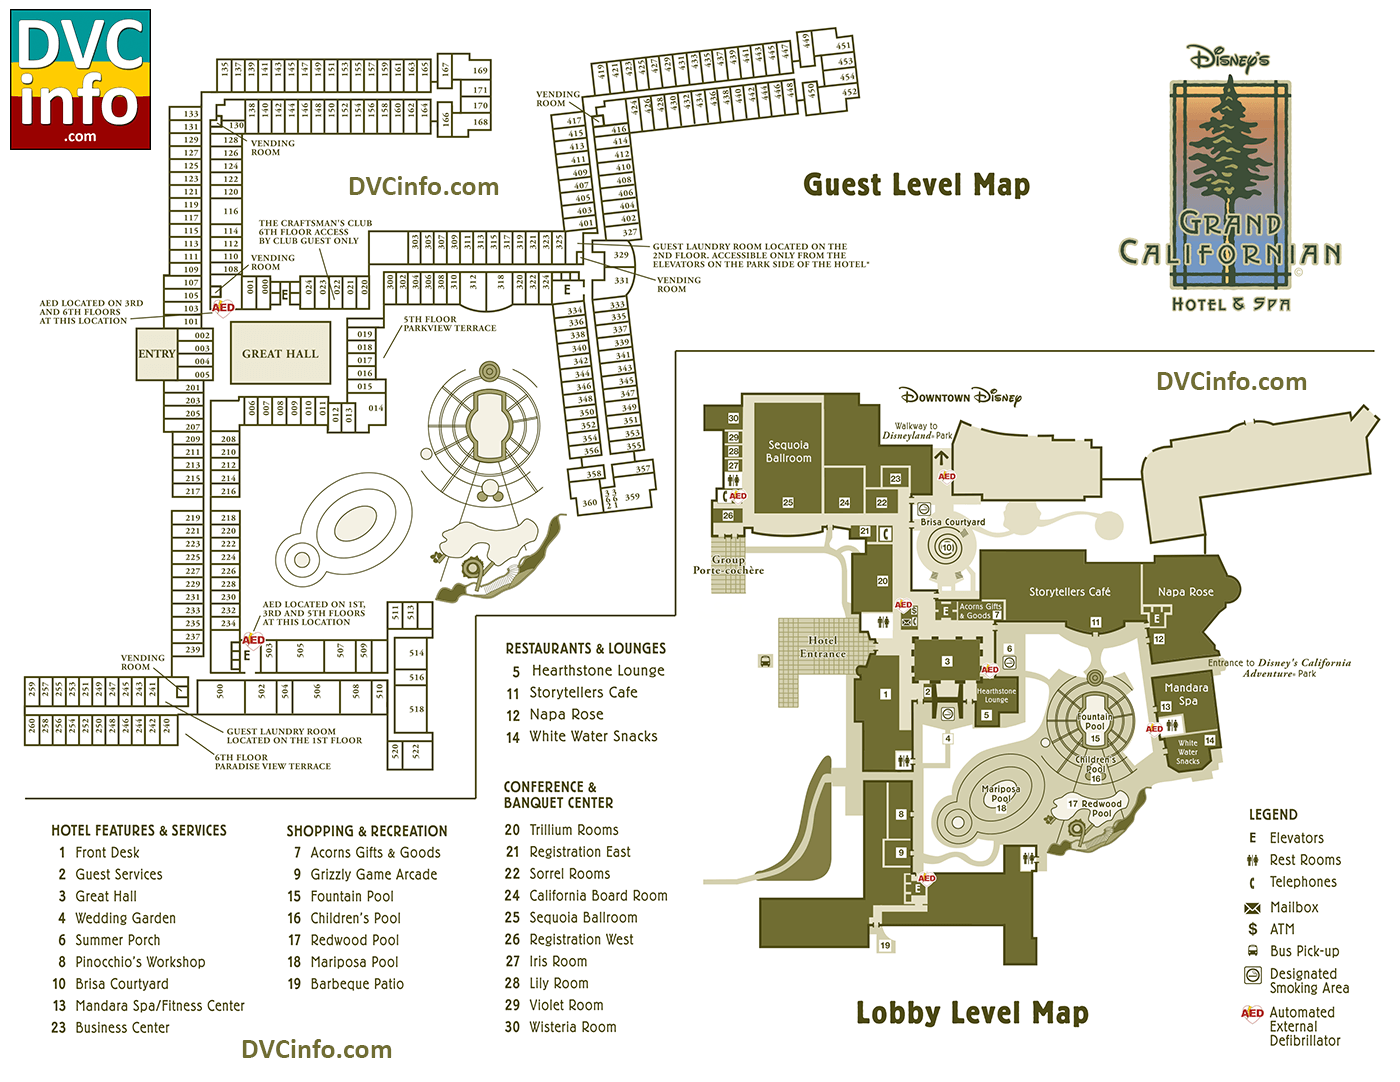 Grand Californian Hotel Room Map